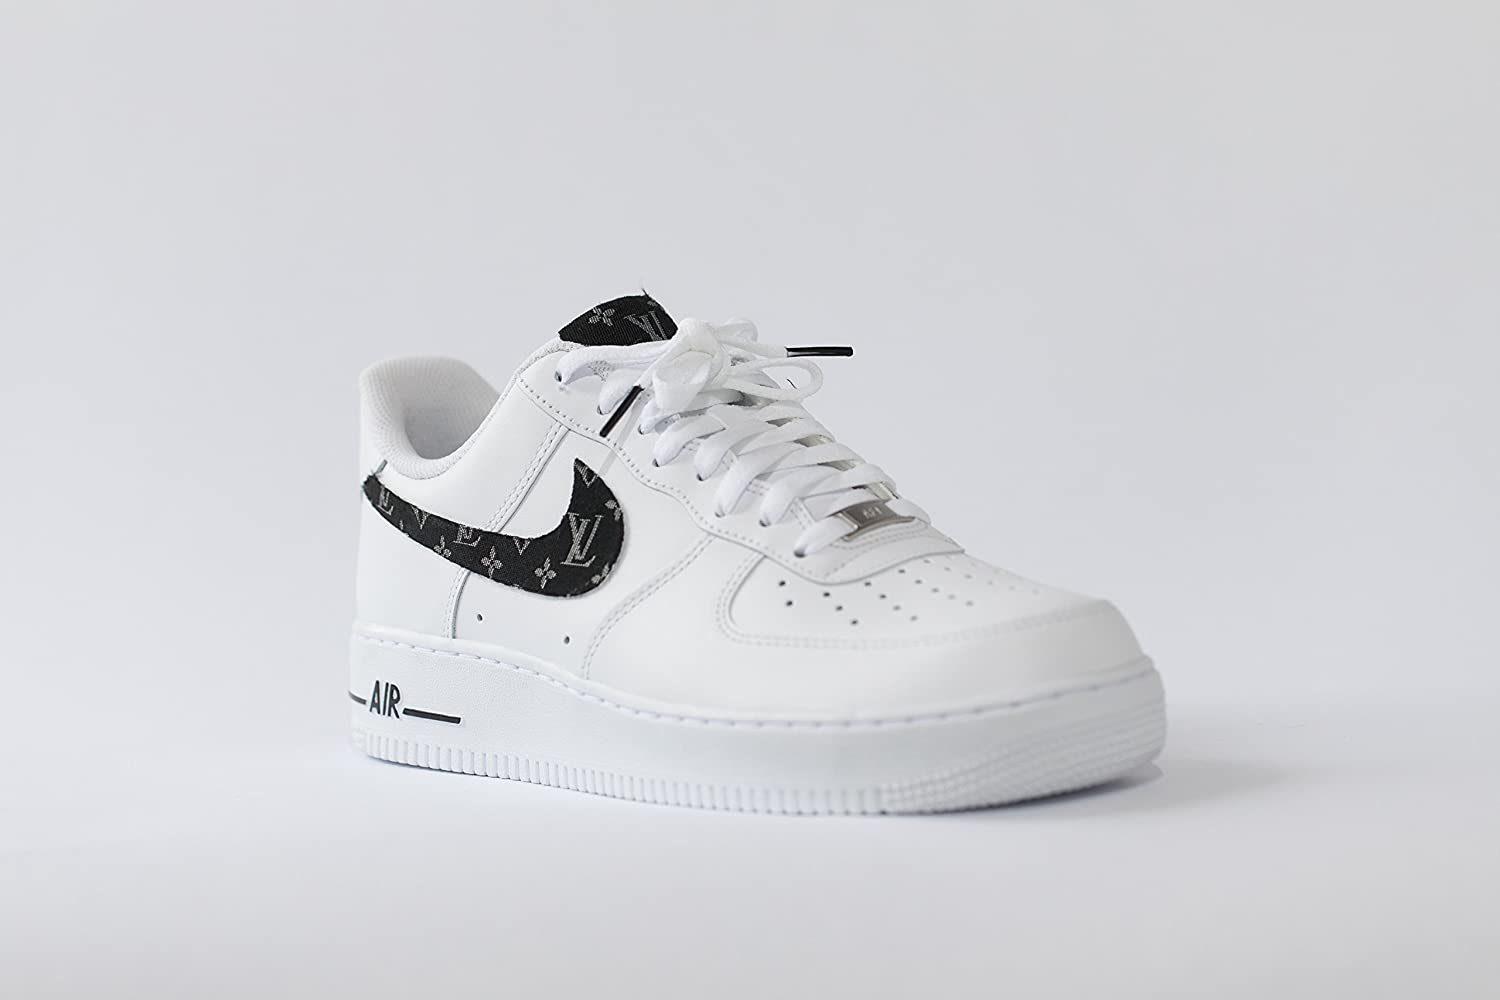 038bfb54894497 Amazon.com  Nike Air Force 1 AF1 Custom LV Scarf Inspired Edition  Handmade